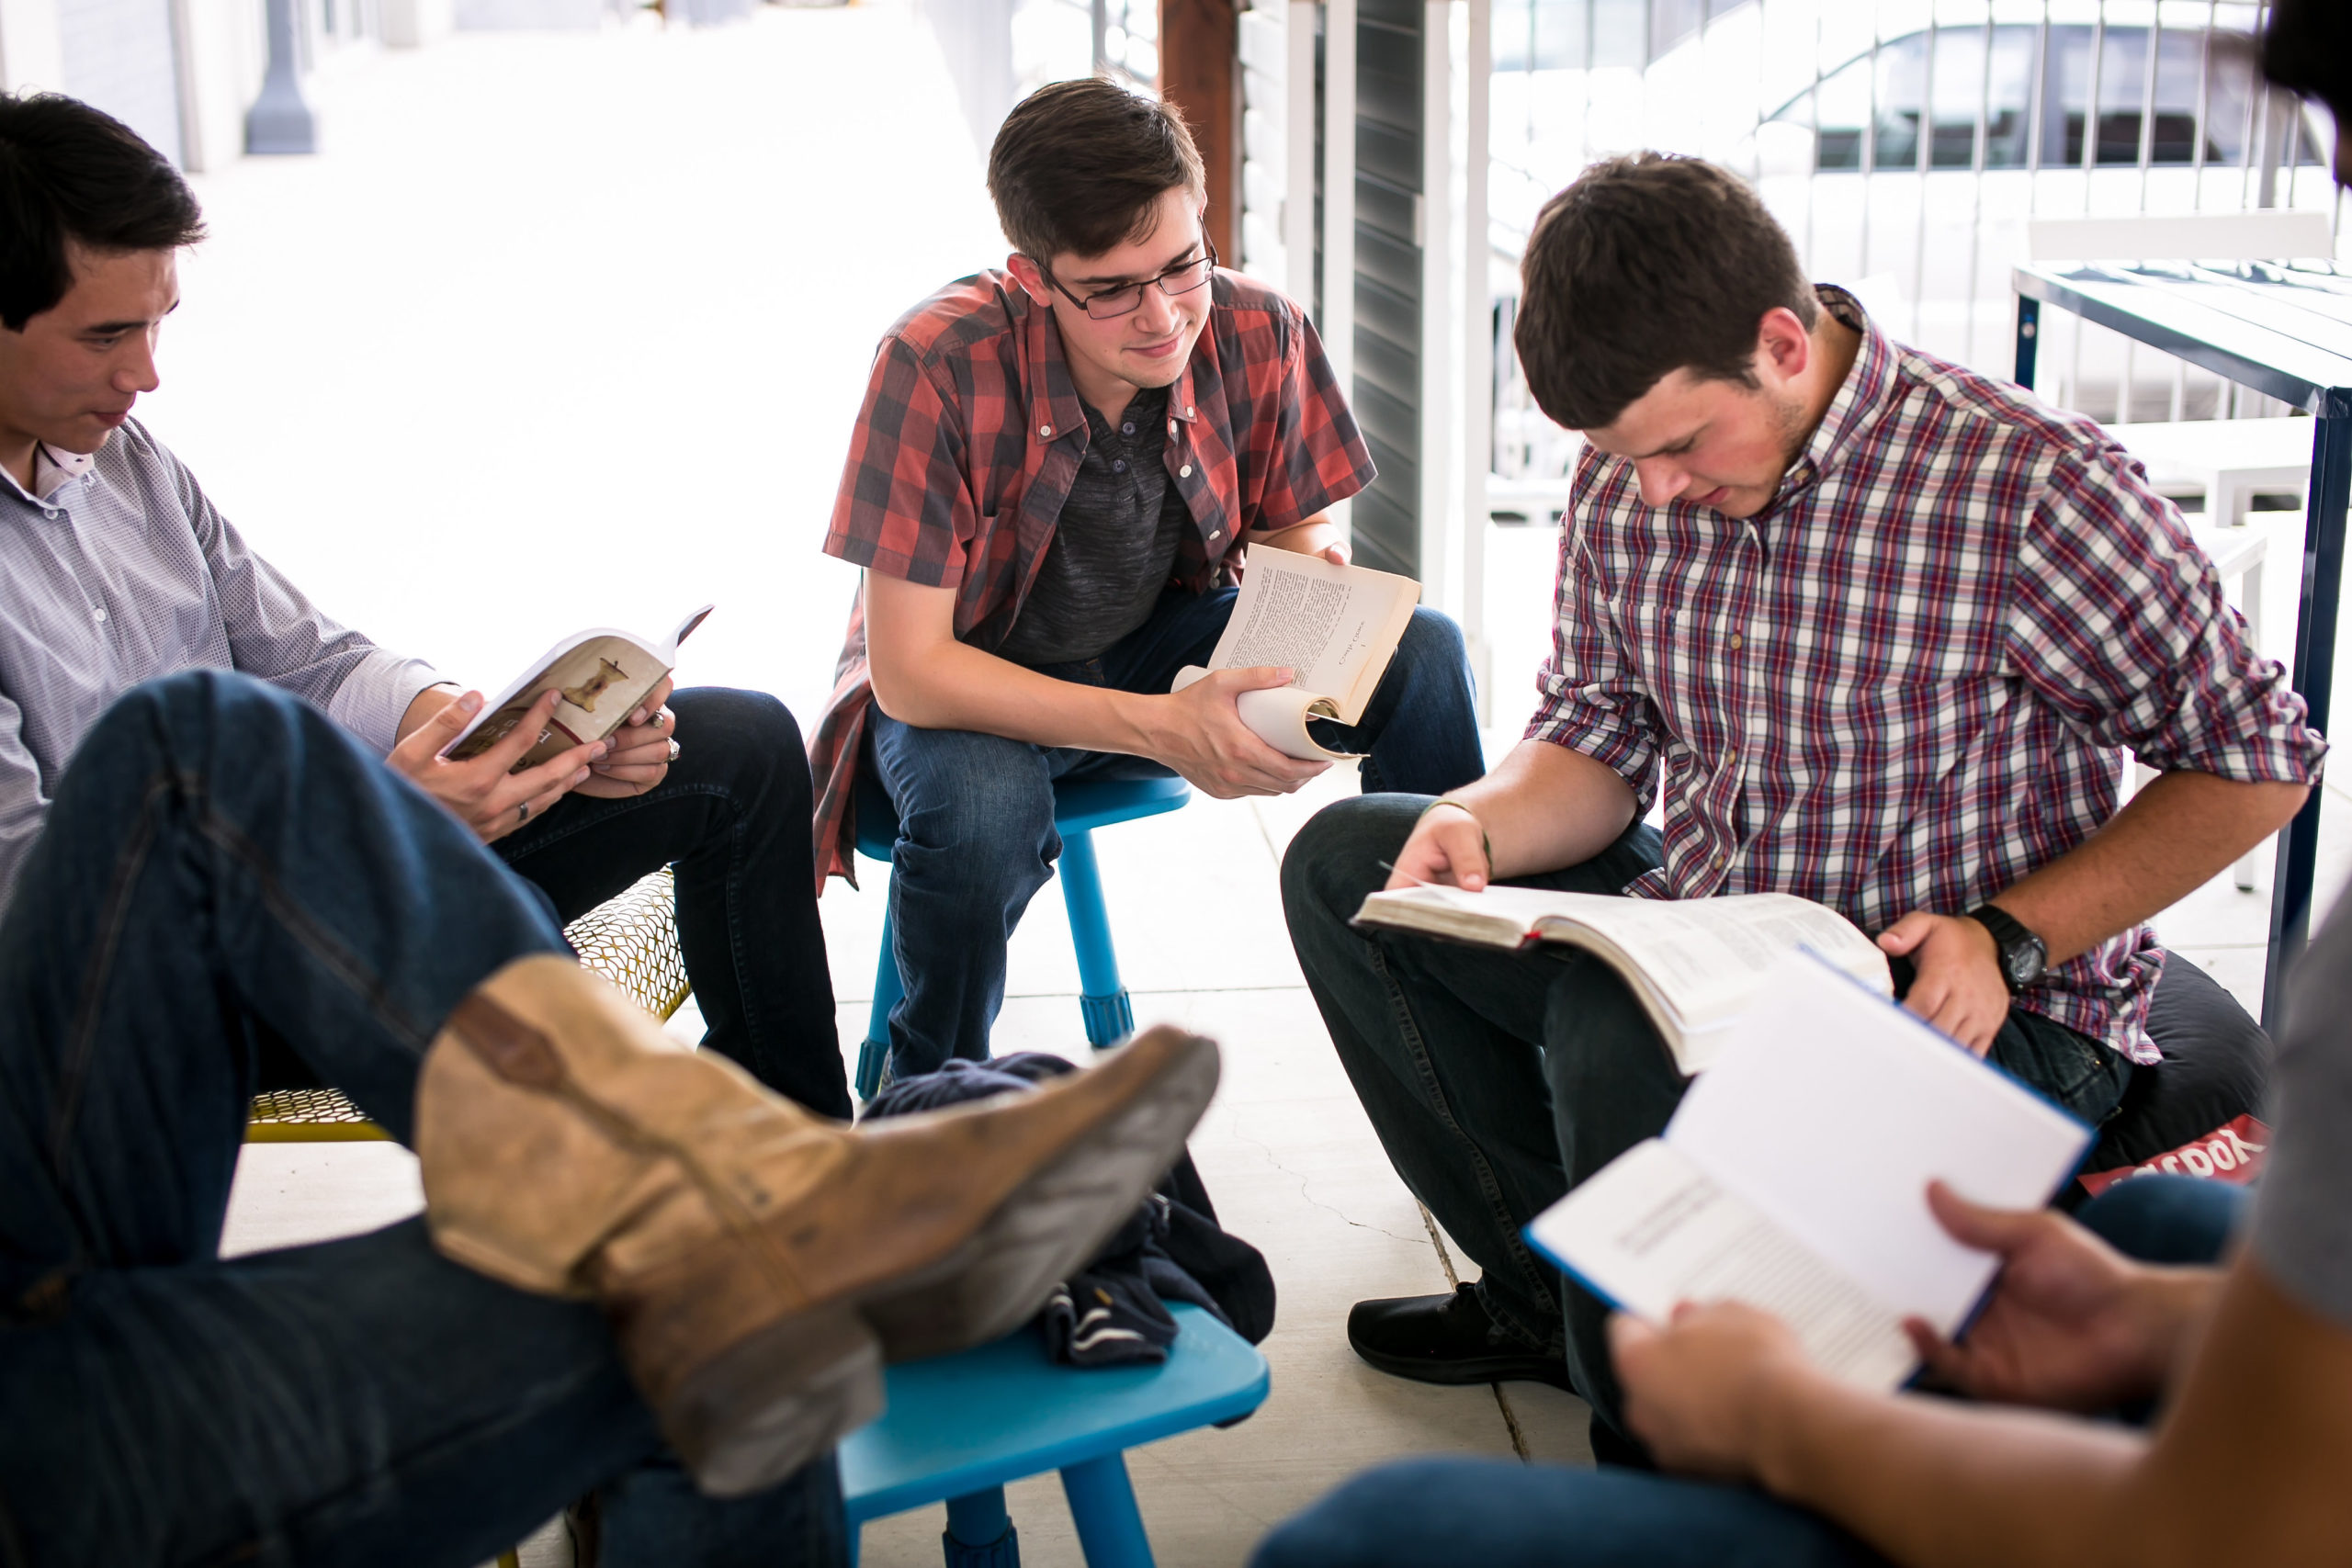 A small group of young men participating in a Bible study at a local establishment.